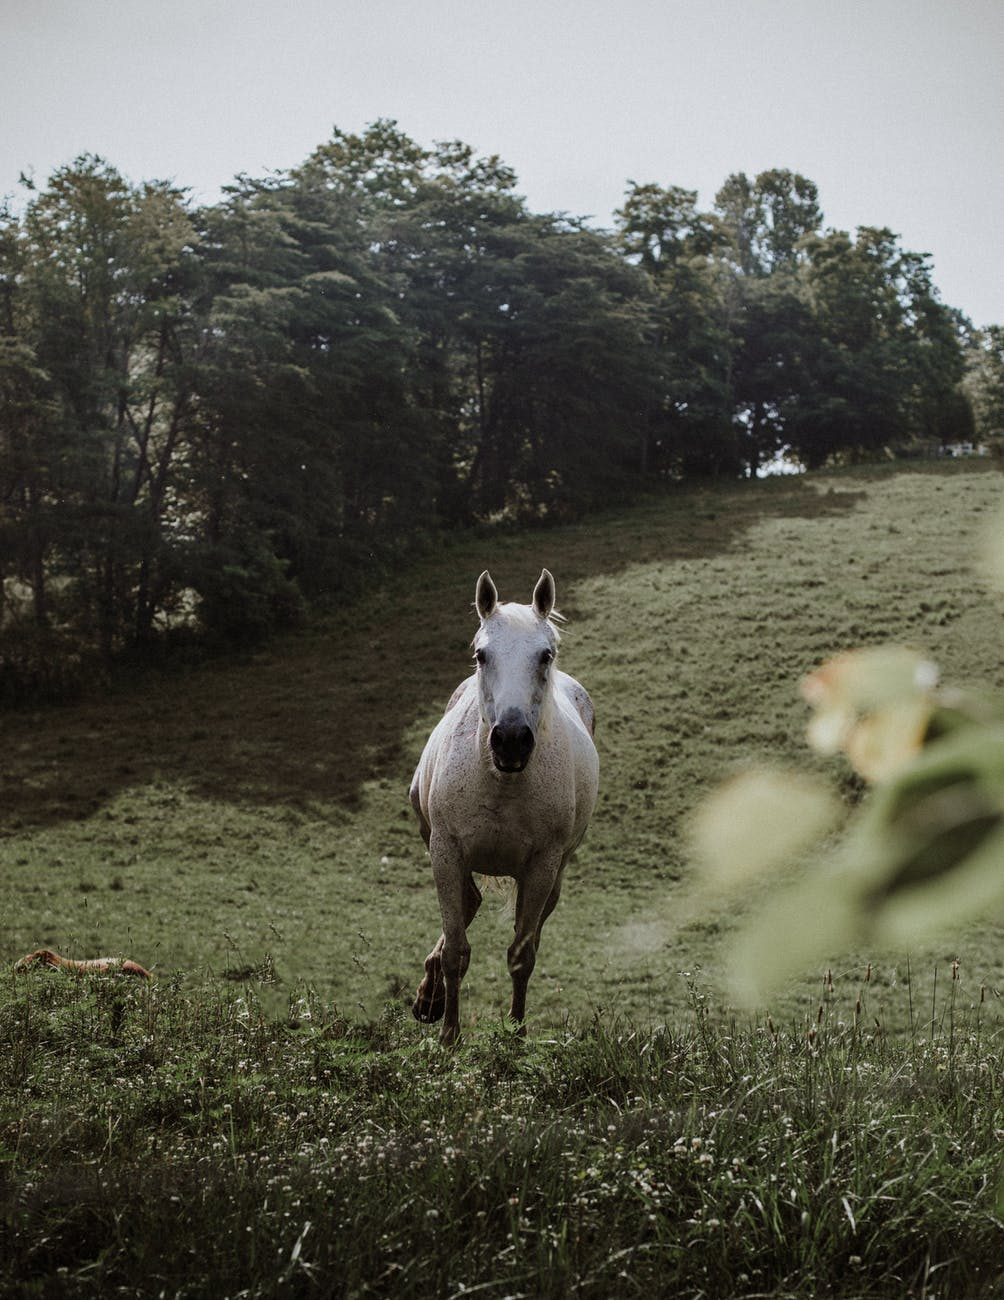 photo of white horse running in grass field